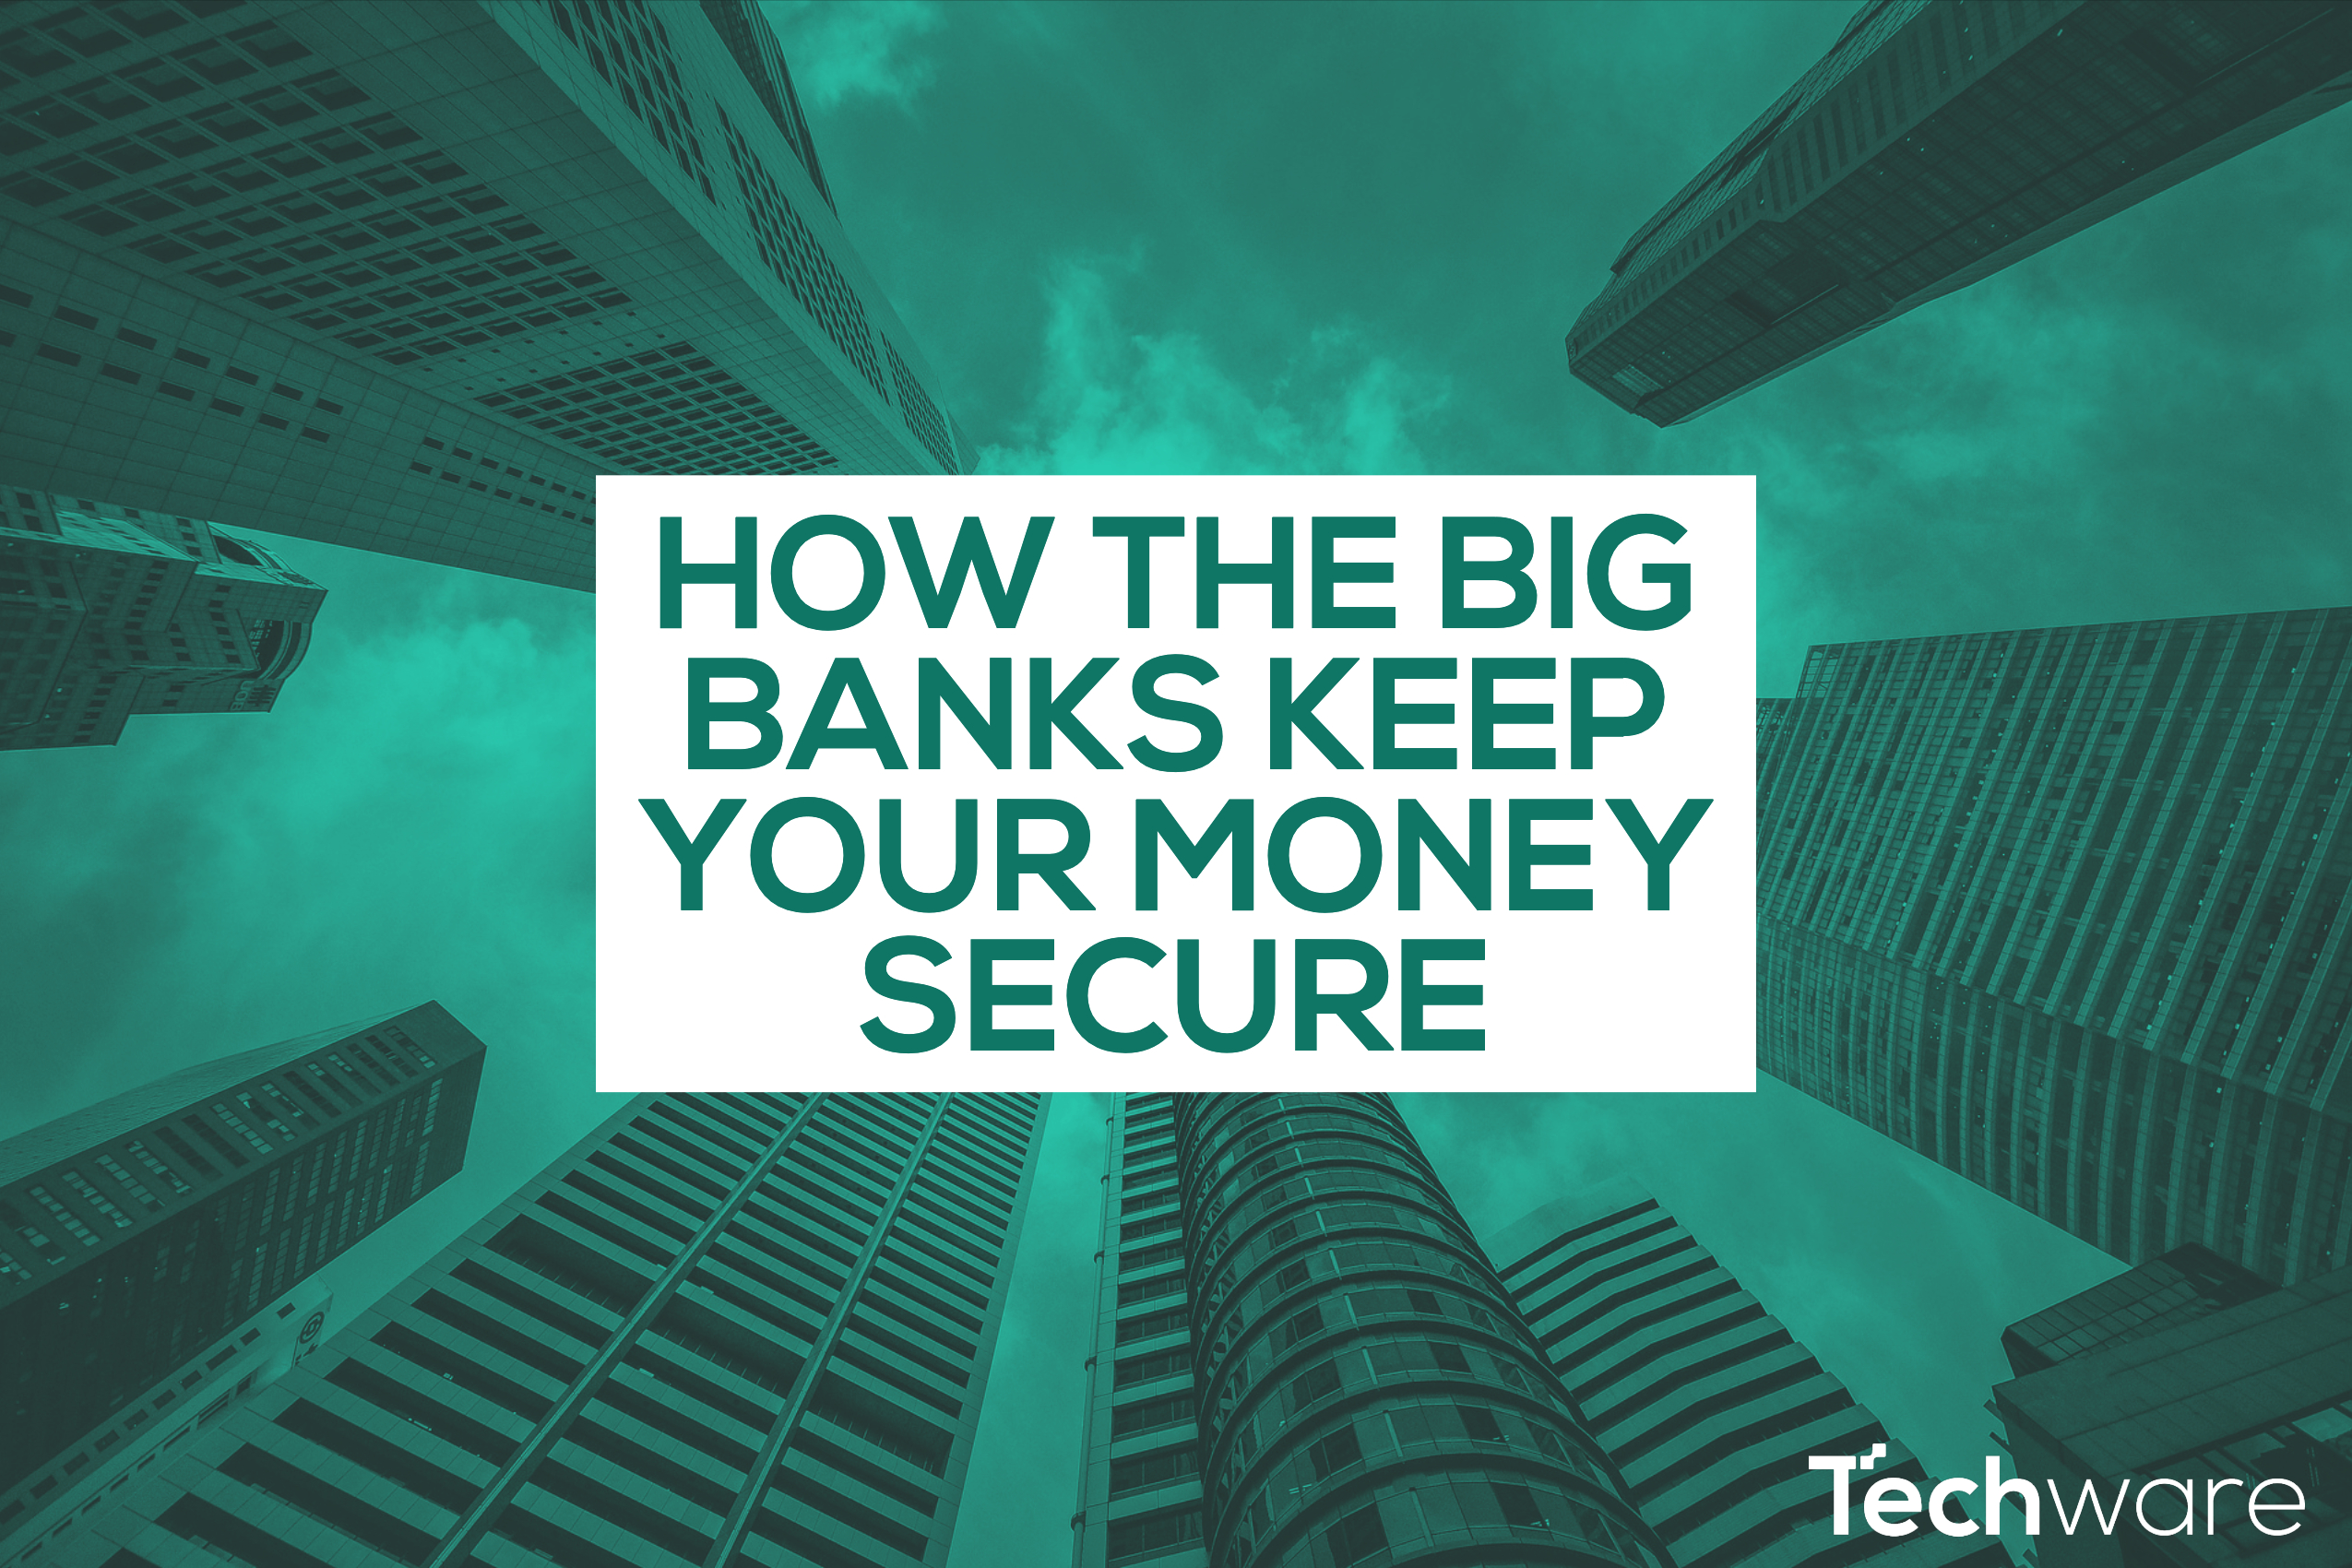 The Security employed by big banks: How do they keep your money safe?